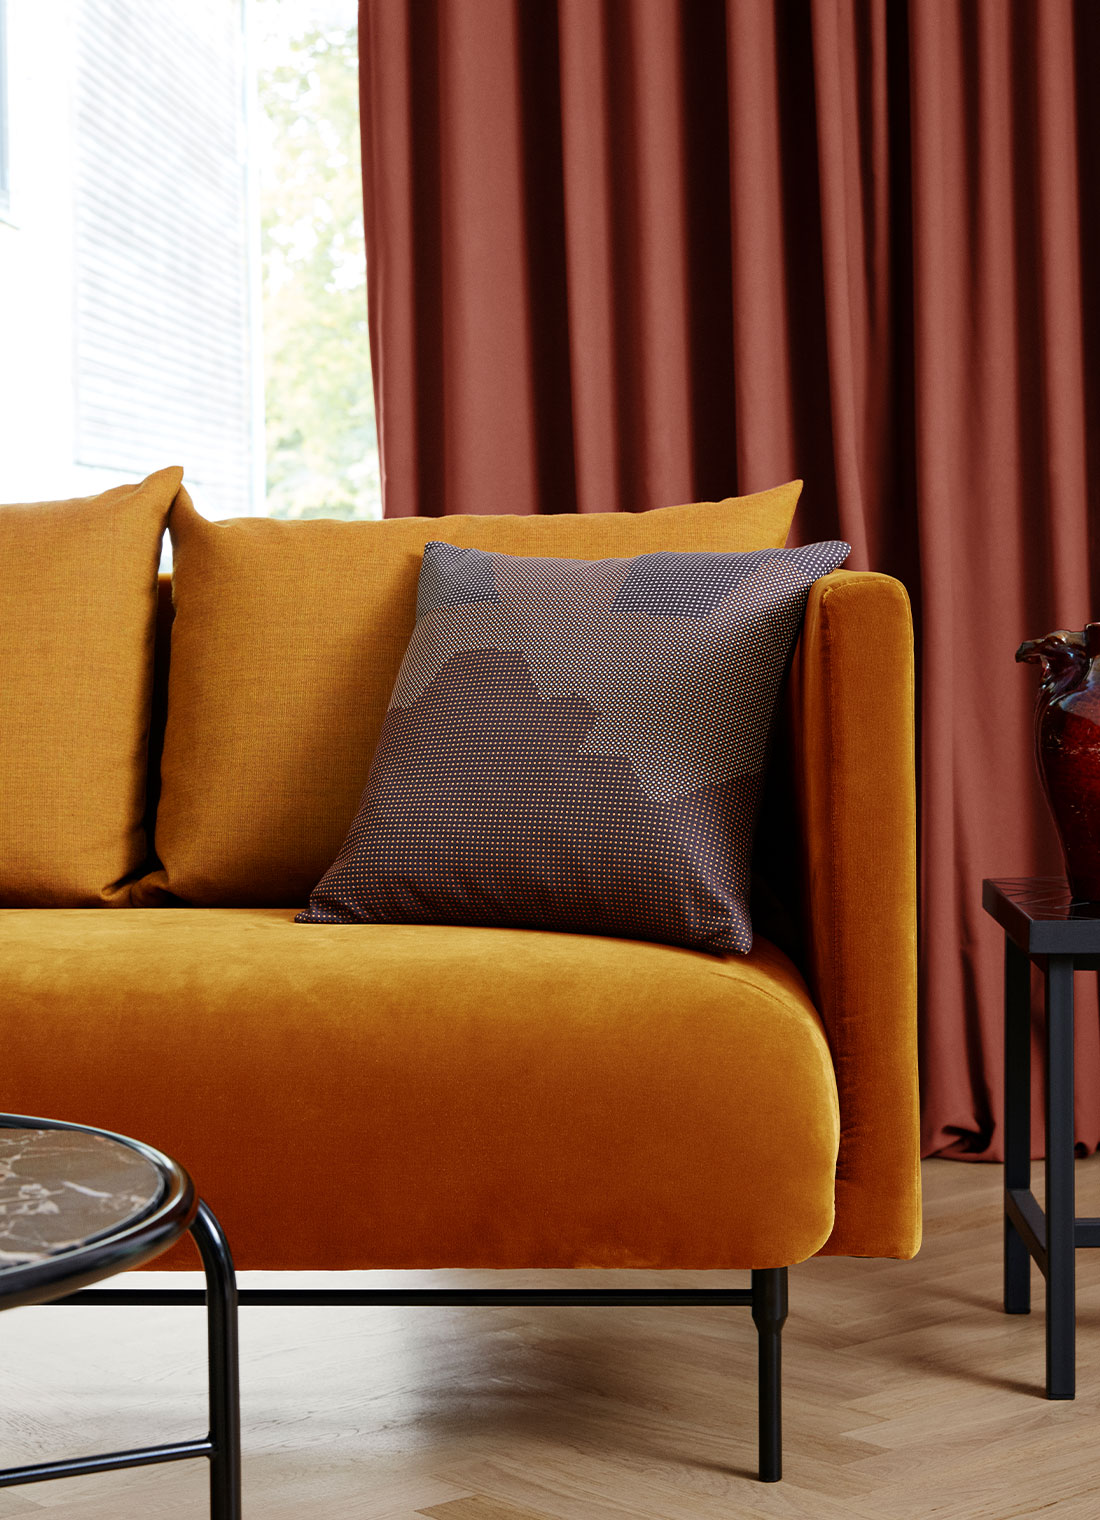 Galore sofa in a colourful, modern living room.